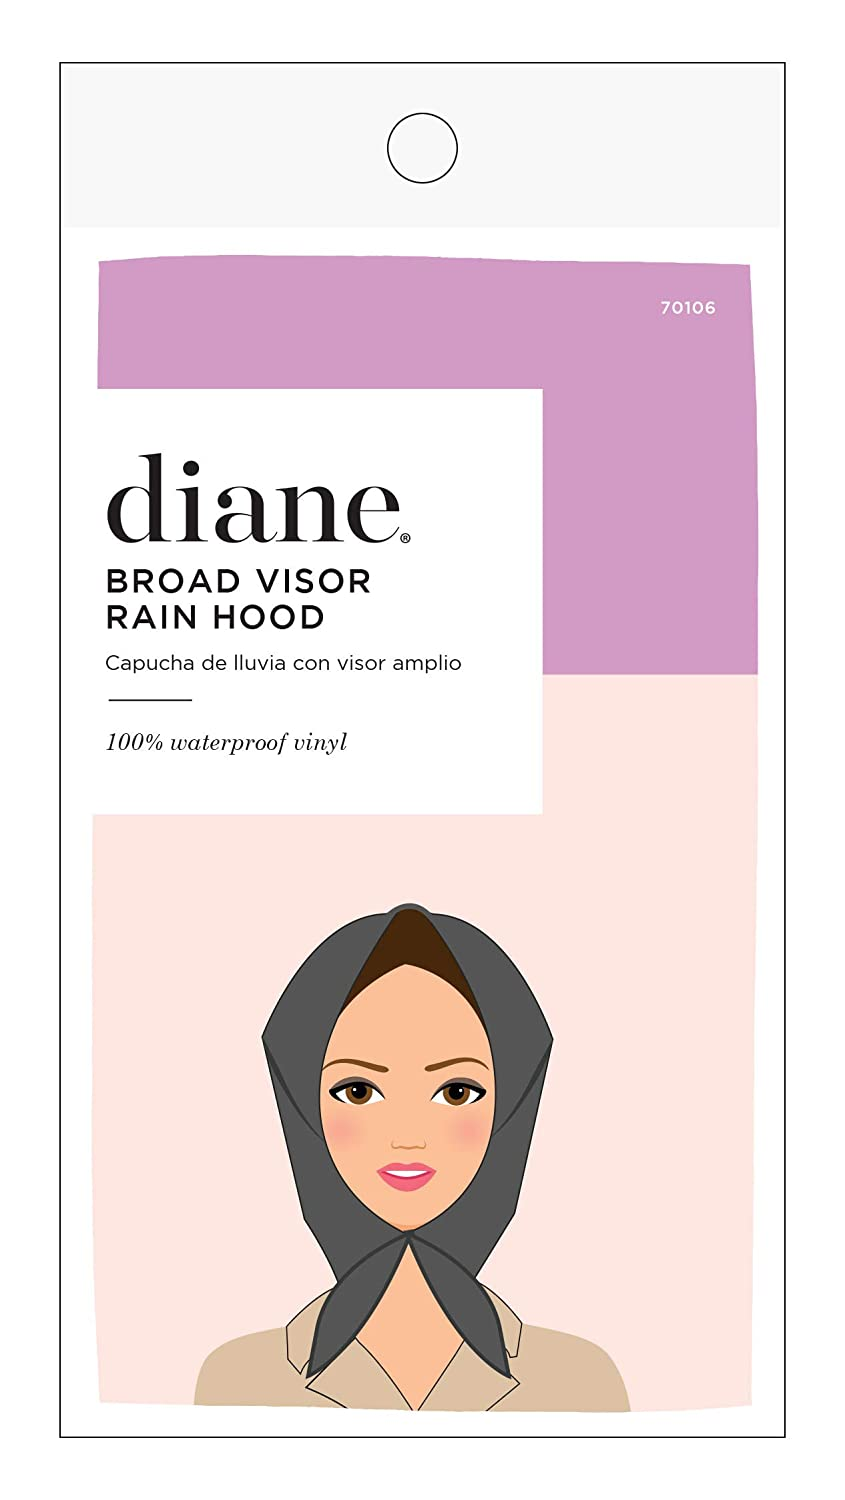 Diane Broad Visor Rain Hood: Beauty